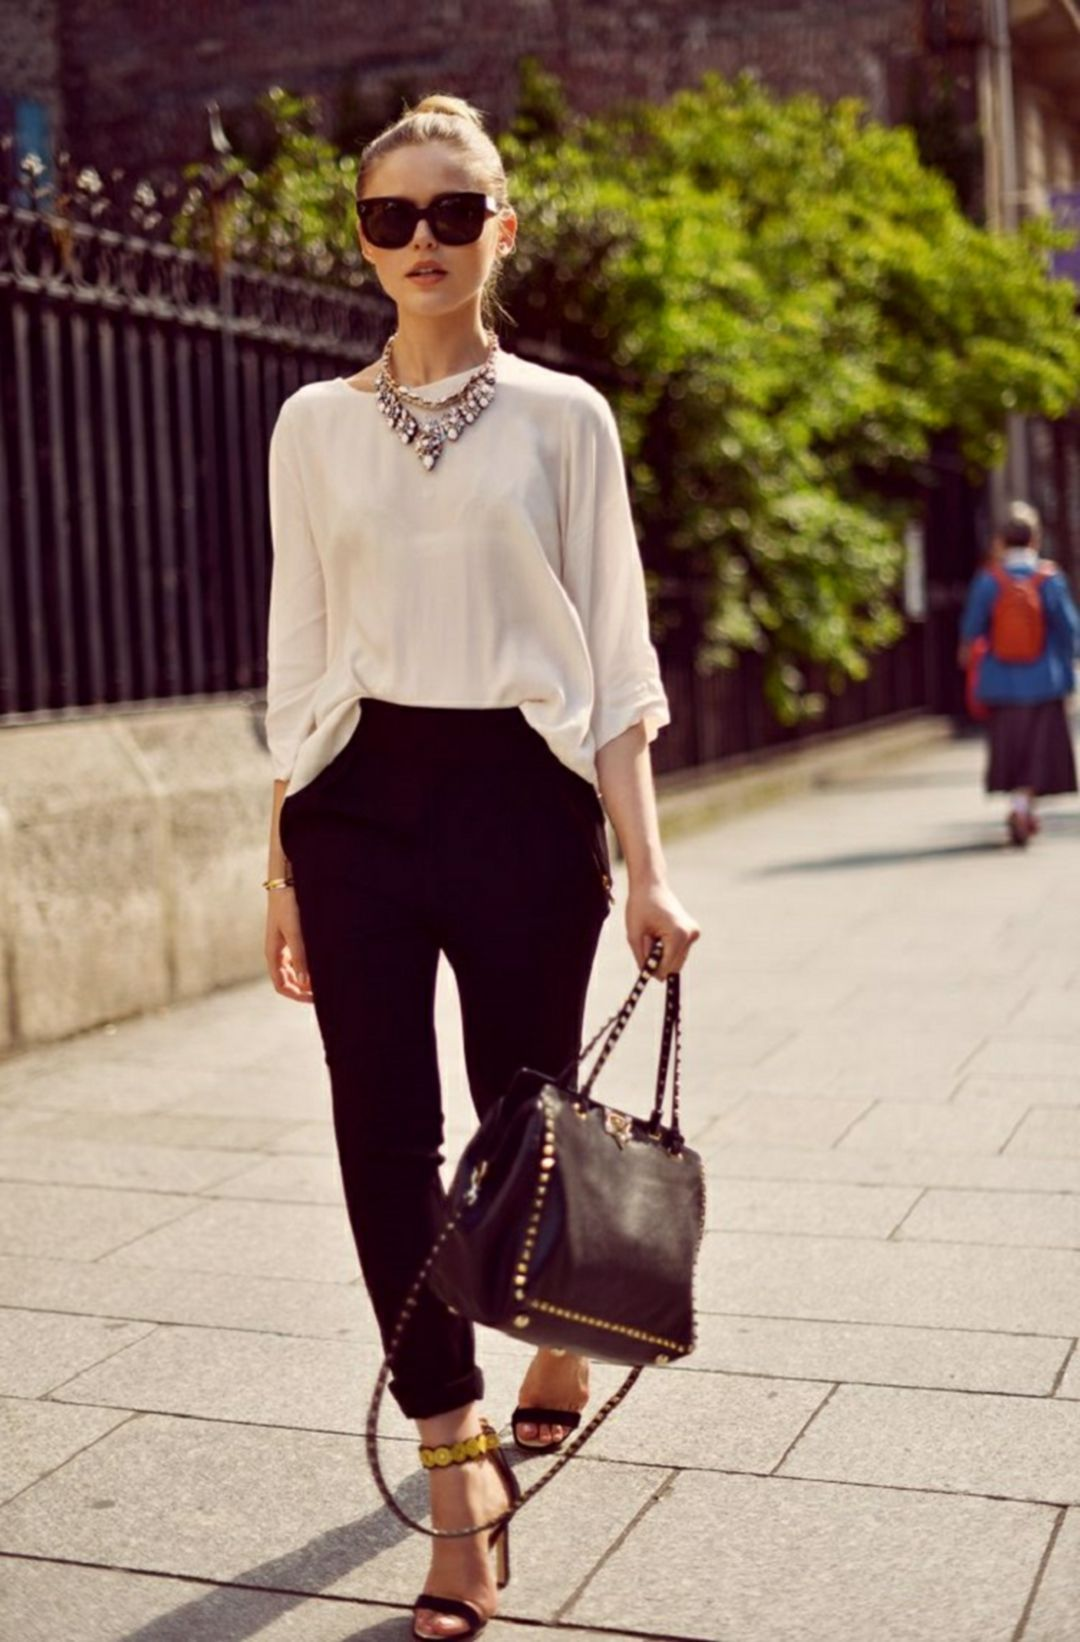 40+ Fashionable Work Outfit Ideas For Women To Looks More Elegant - Fashions Nowadays